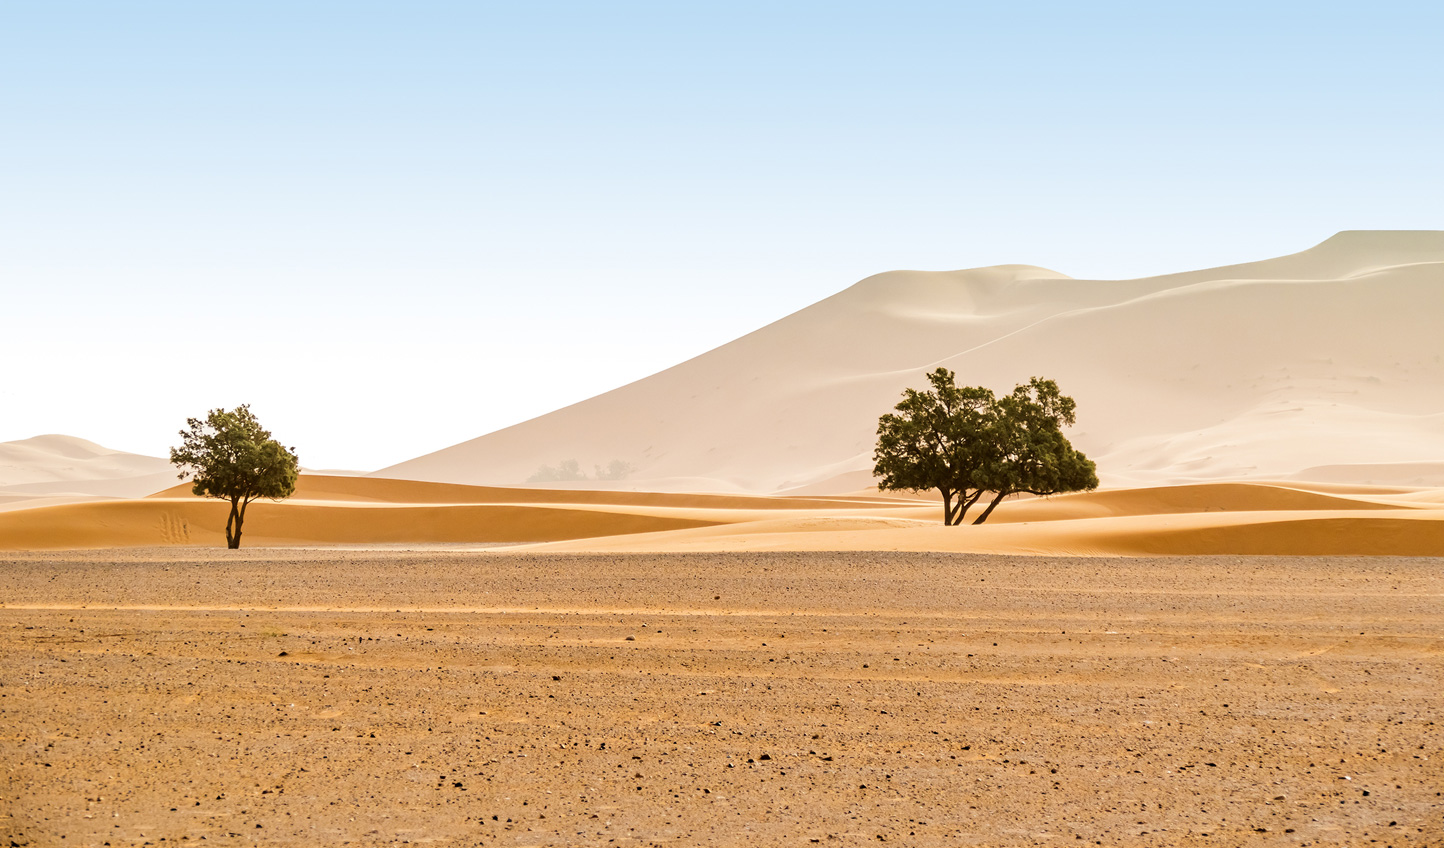 Leave civilisation behind and head for the Sahara Desert